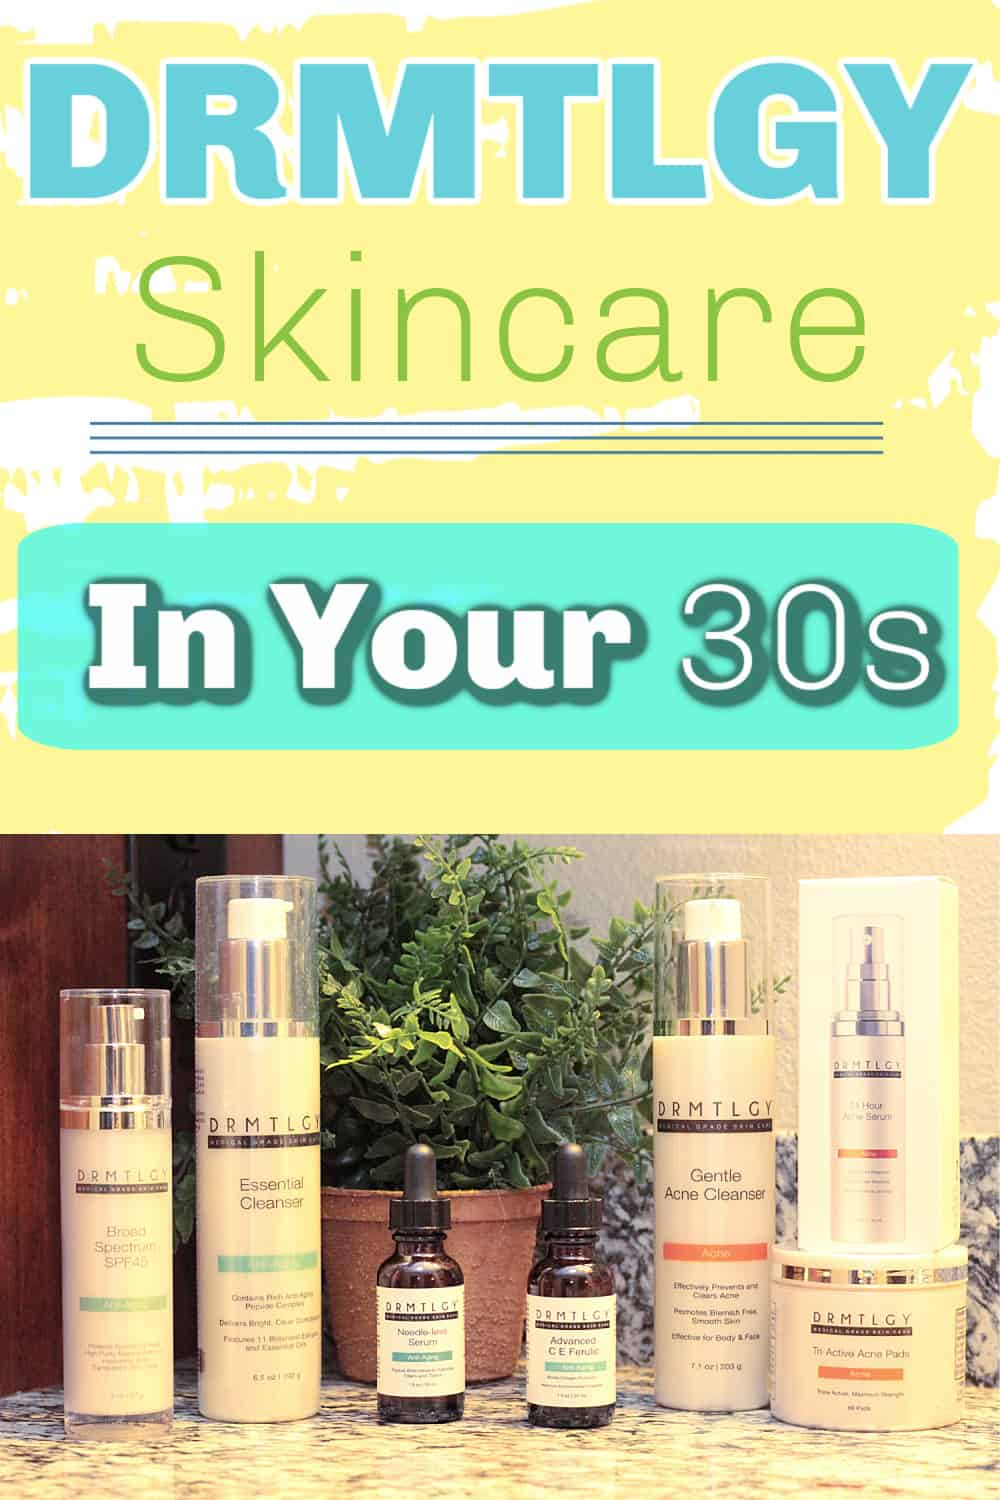 DRMTLGY skincare in your 30s